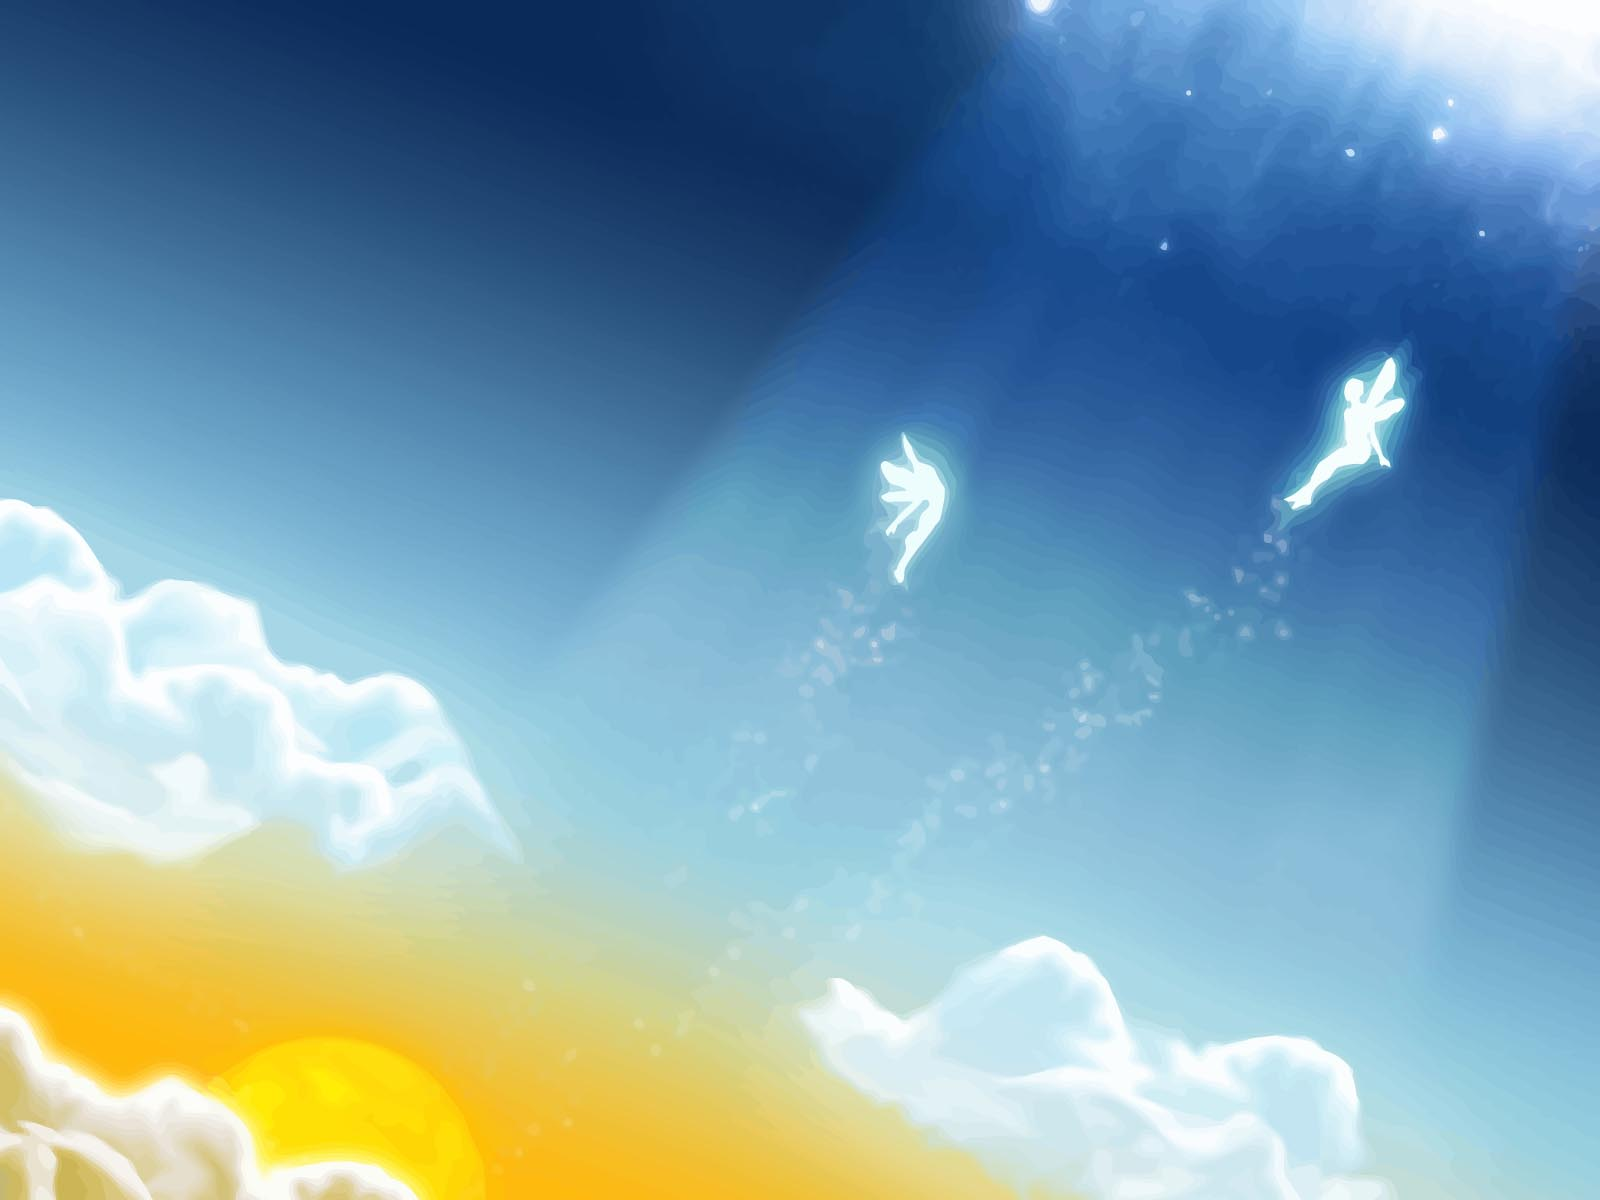 3d ppt backgrounds page 5 of 12 ppt grounds fairytale sky clouds pronofoot35fo Image collections